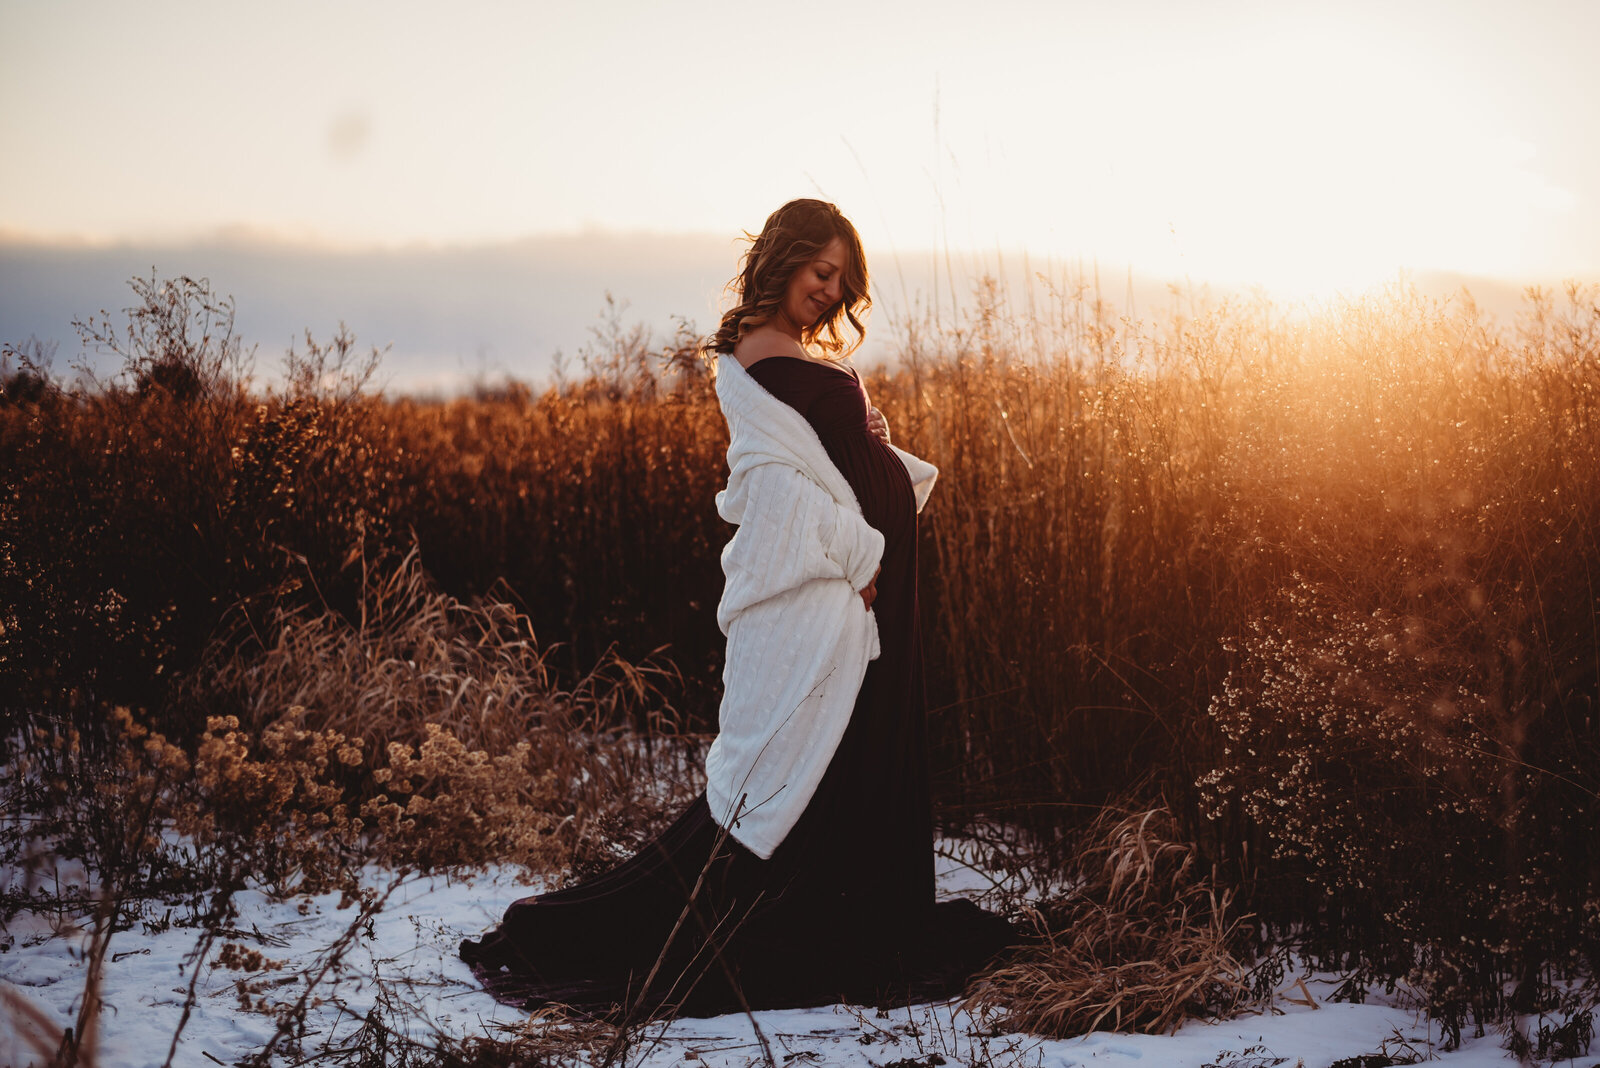 Pregnant woman in a field at sunset in Whitby